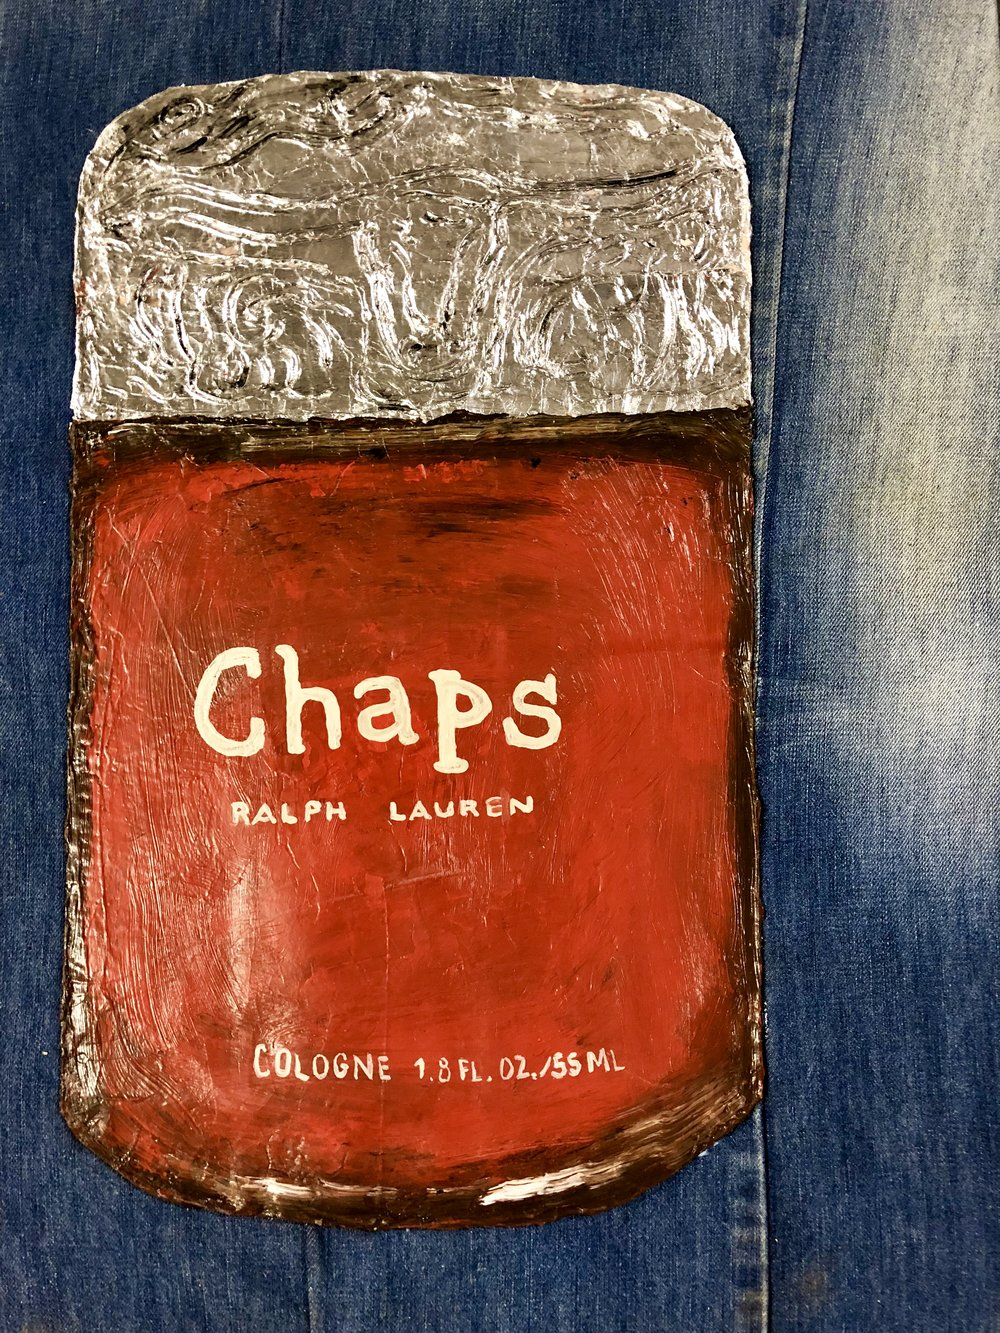 "COSMETICS SERIES-CHAPS BY RALPH LAUREN-ACRYLIC,SILVER LEAF, CARDBOARD AND DENIM-18""X 24""-2018 $800"